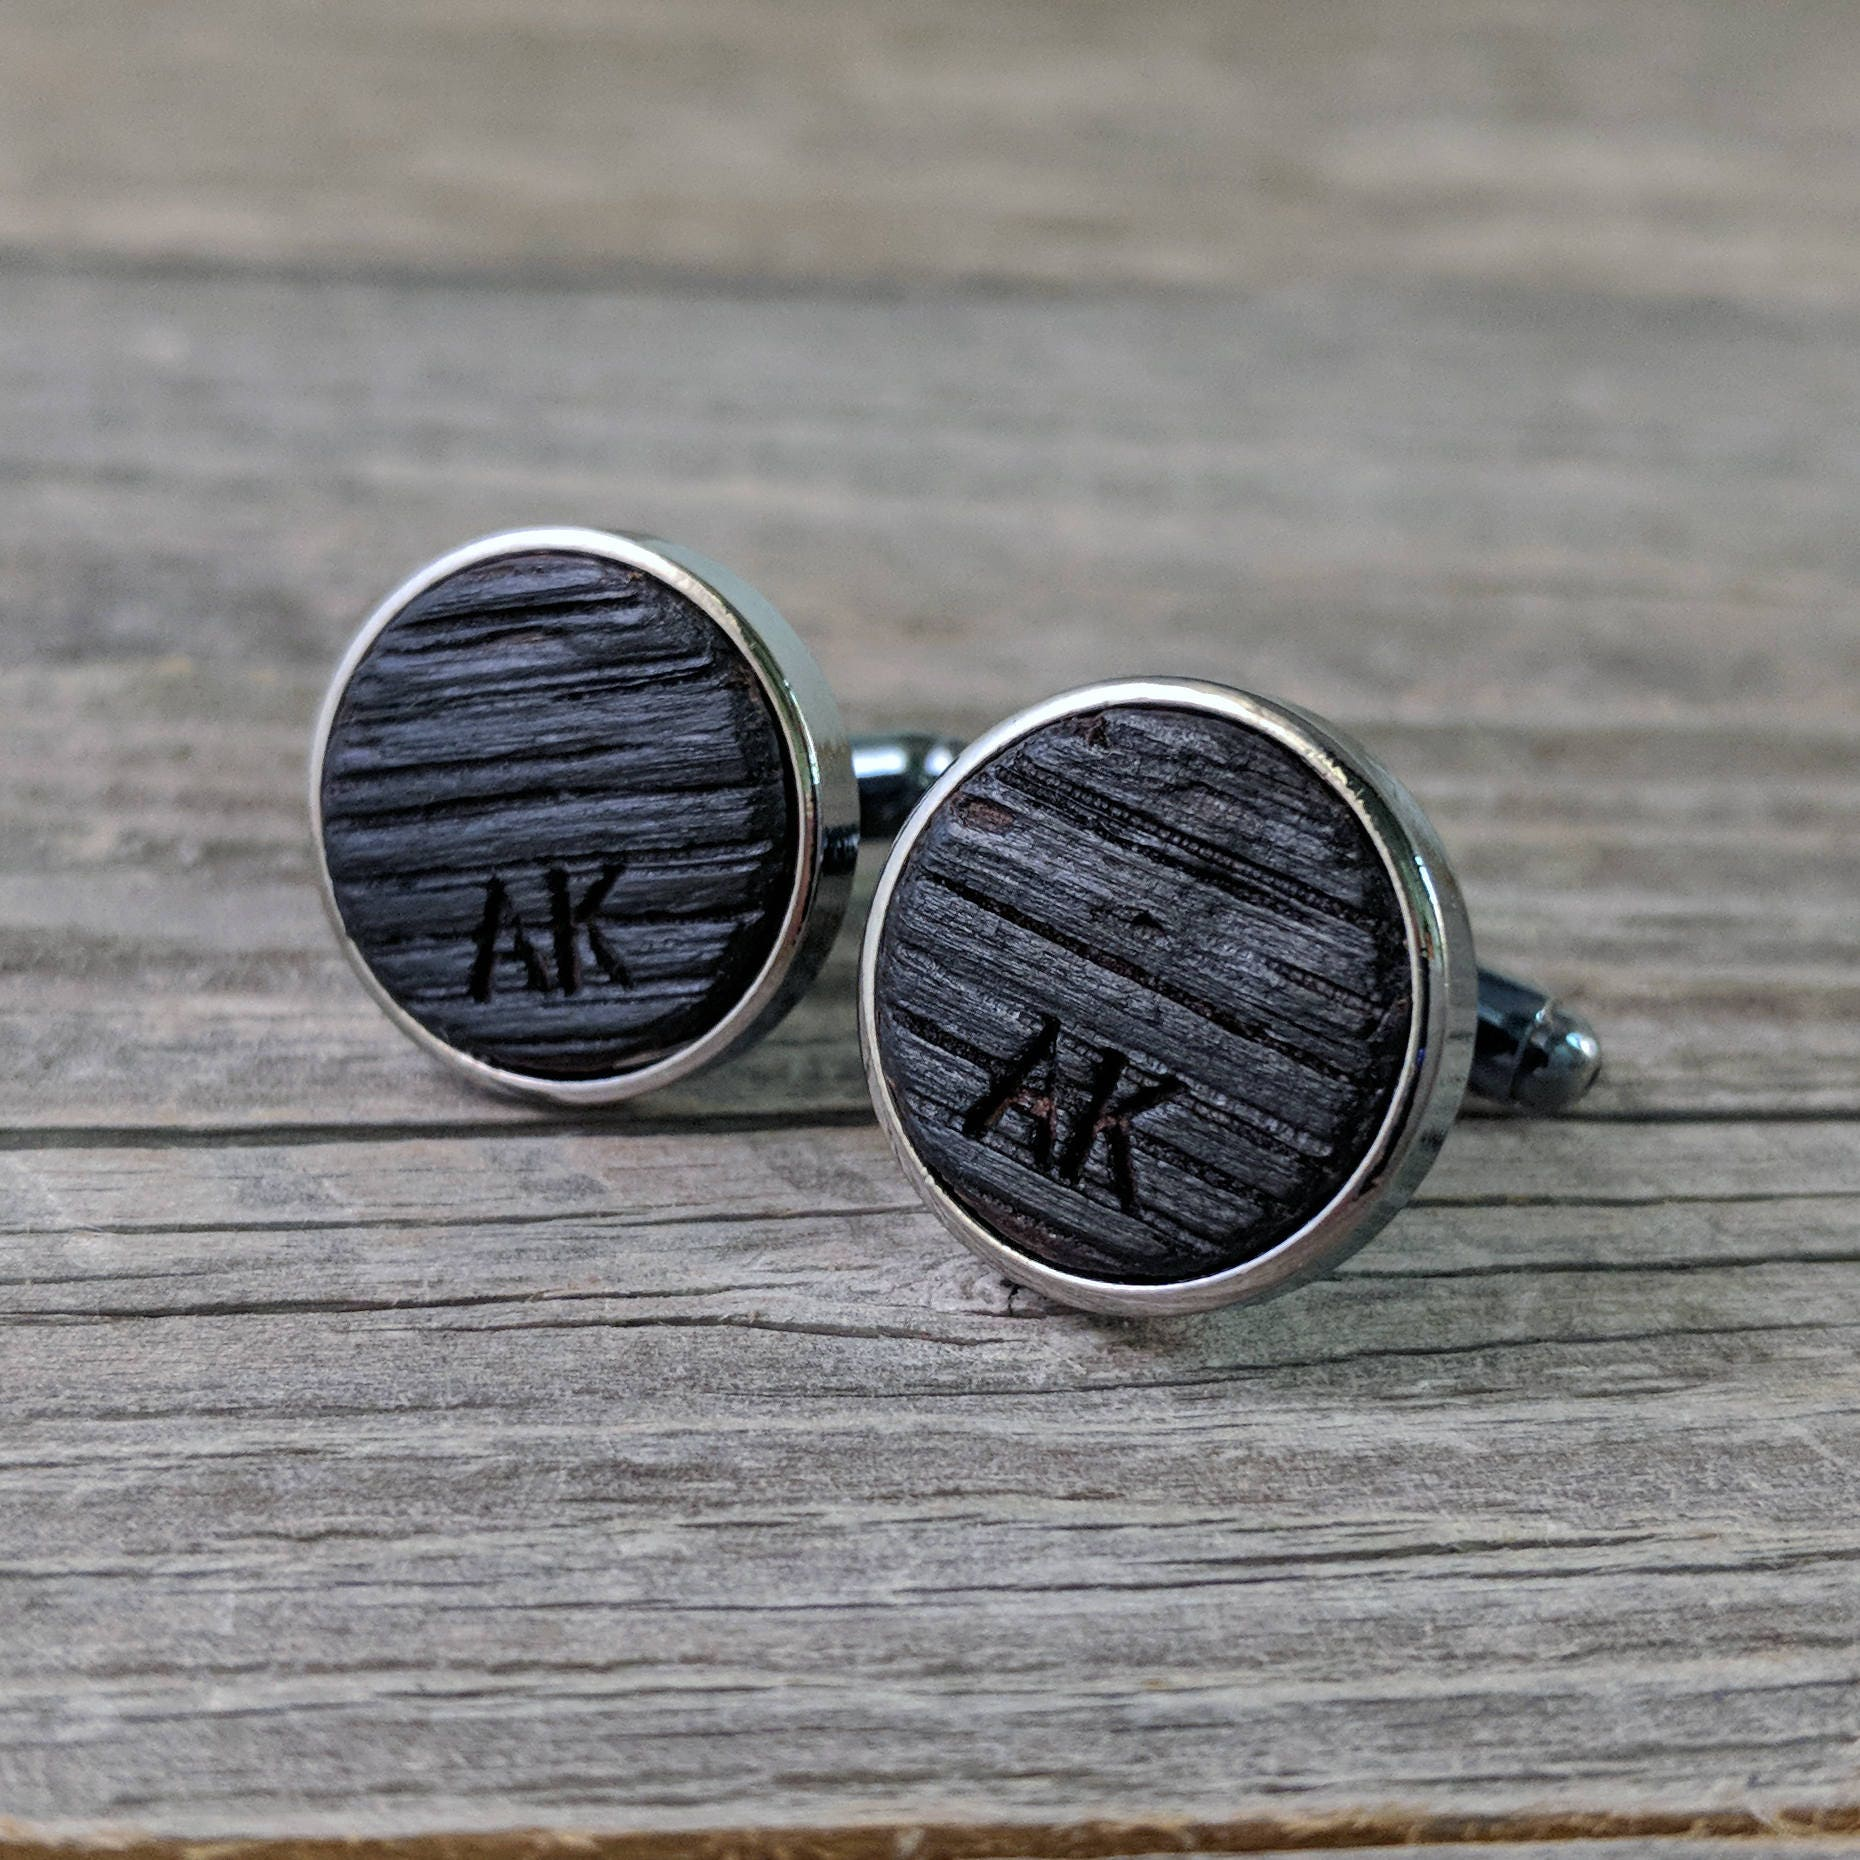 Personalized Cuff Links From A Whiskey Barrel Whiskey Barrel